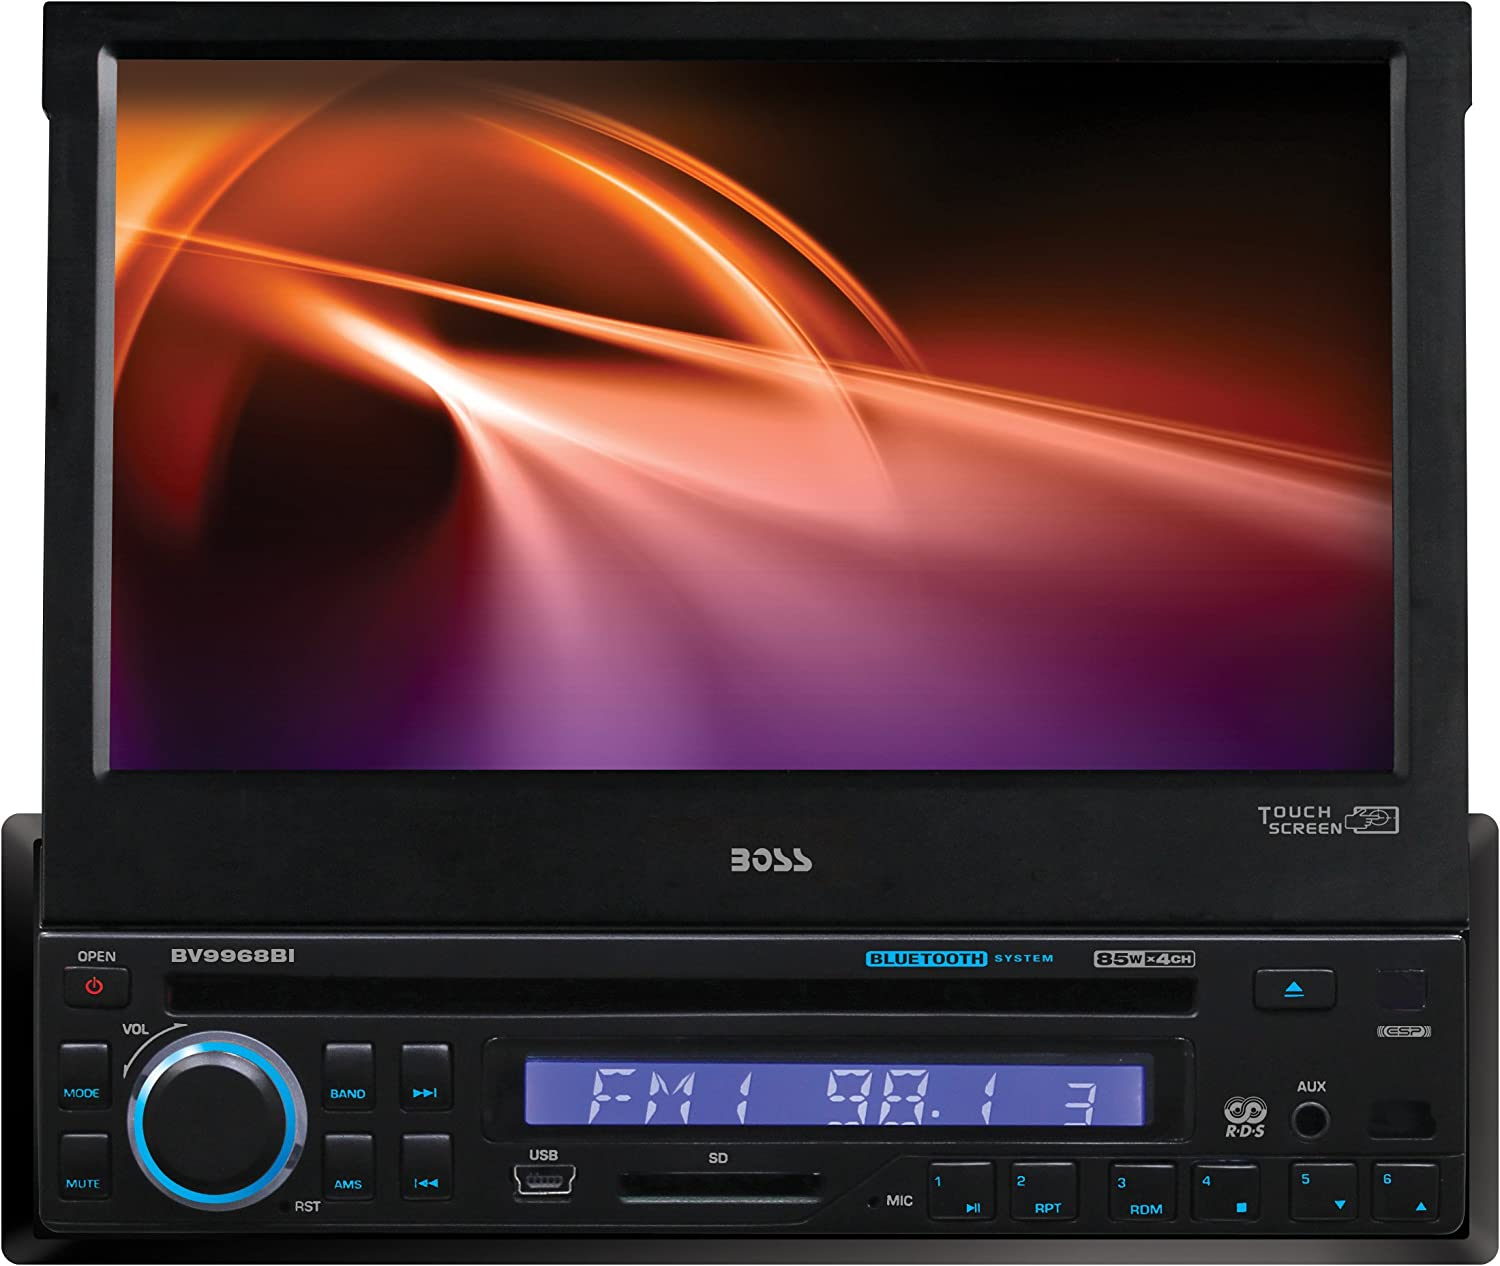 BOSS Audio OFFicial store Systems Quantity limited BV9968BI with Receivers DVD Monitors